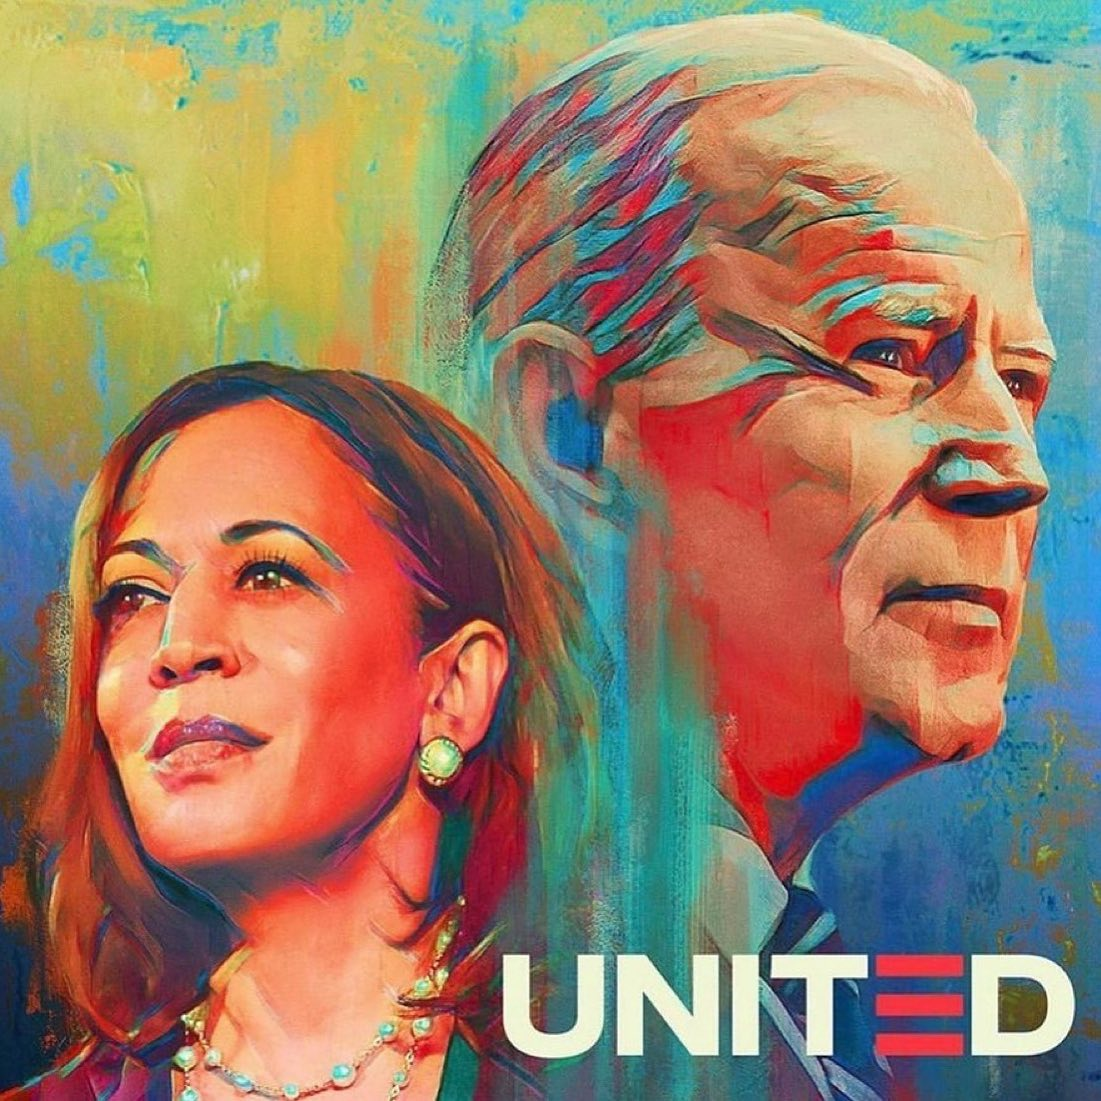 Words can barely express how I feel. @joebiden becoming President signals a return to ethics, morality, science, equality, civic duty, true democracy, and policies to benefit the people. He's worked 48 years to get here. @KamalaHarris becoming the first female, first South Asian, first Black VP, and a child of immigrants, is so personally gratifying. This is America, people!